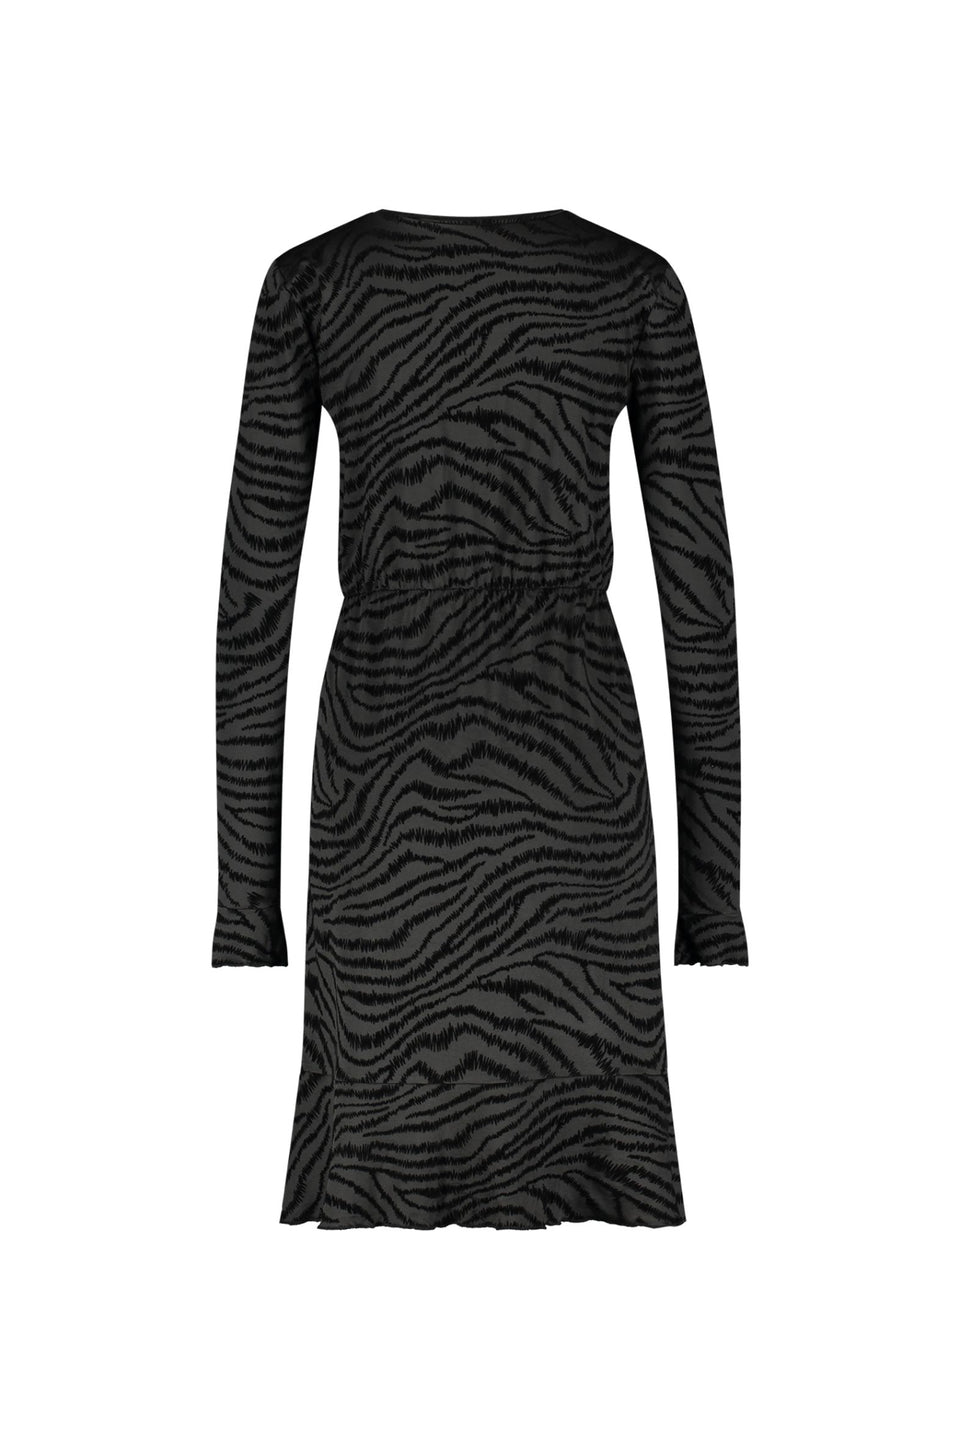 Doris Dress - Black